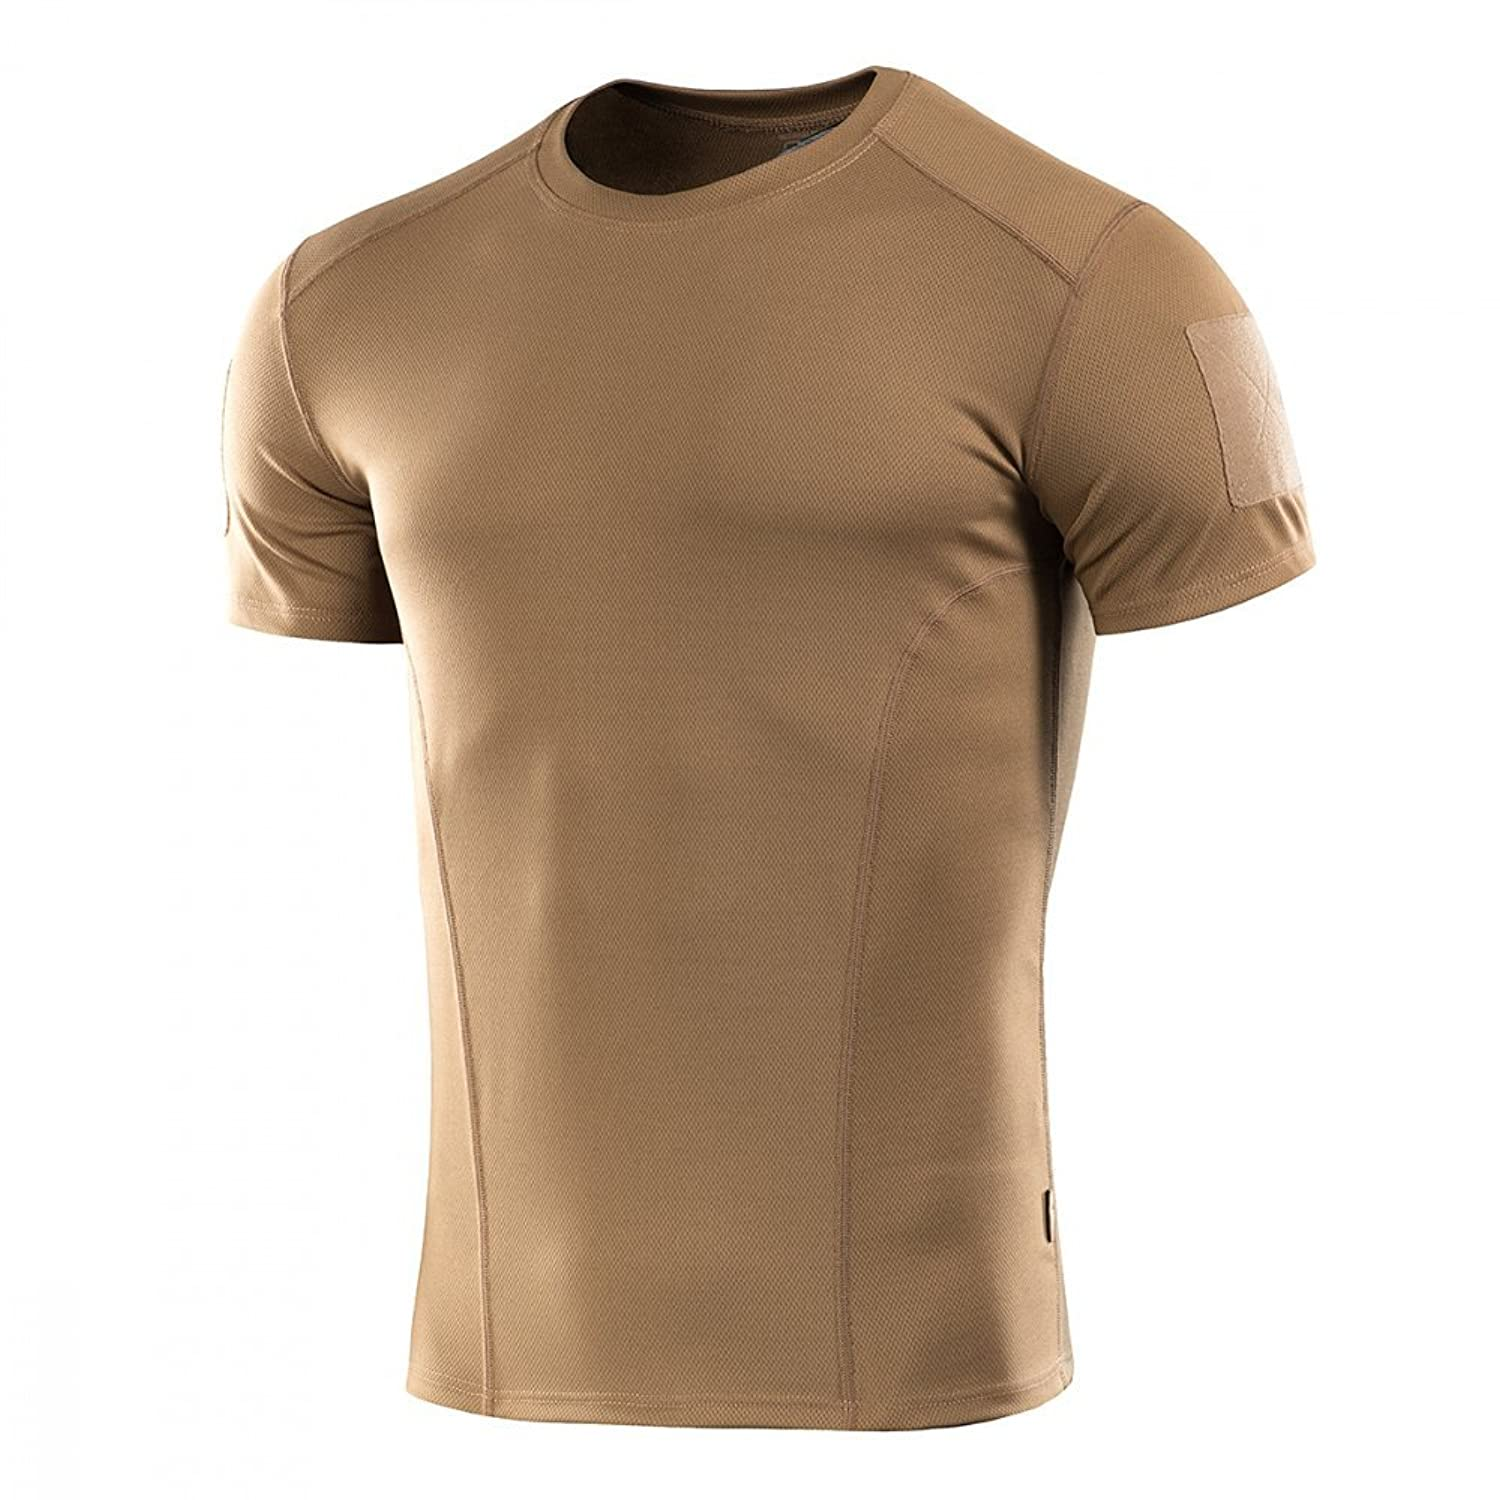 1c8f4847 MULTIPURPOSE: These tactical t-shirts are primarily useful for people with  active lifestyle such as police and security officers, EMS, army, military  and ...